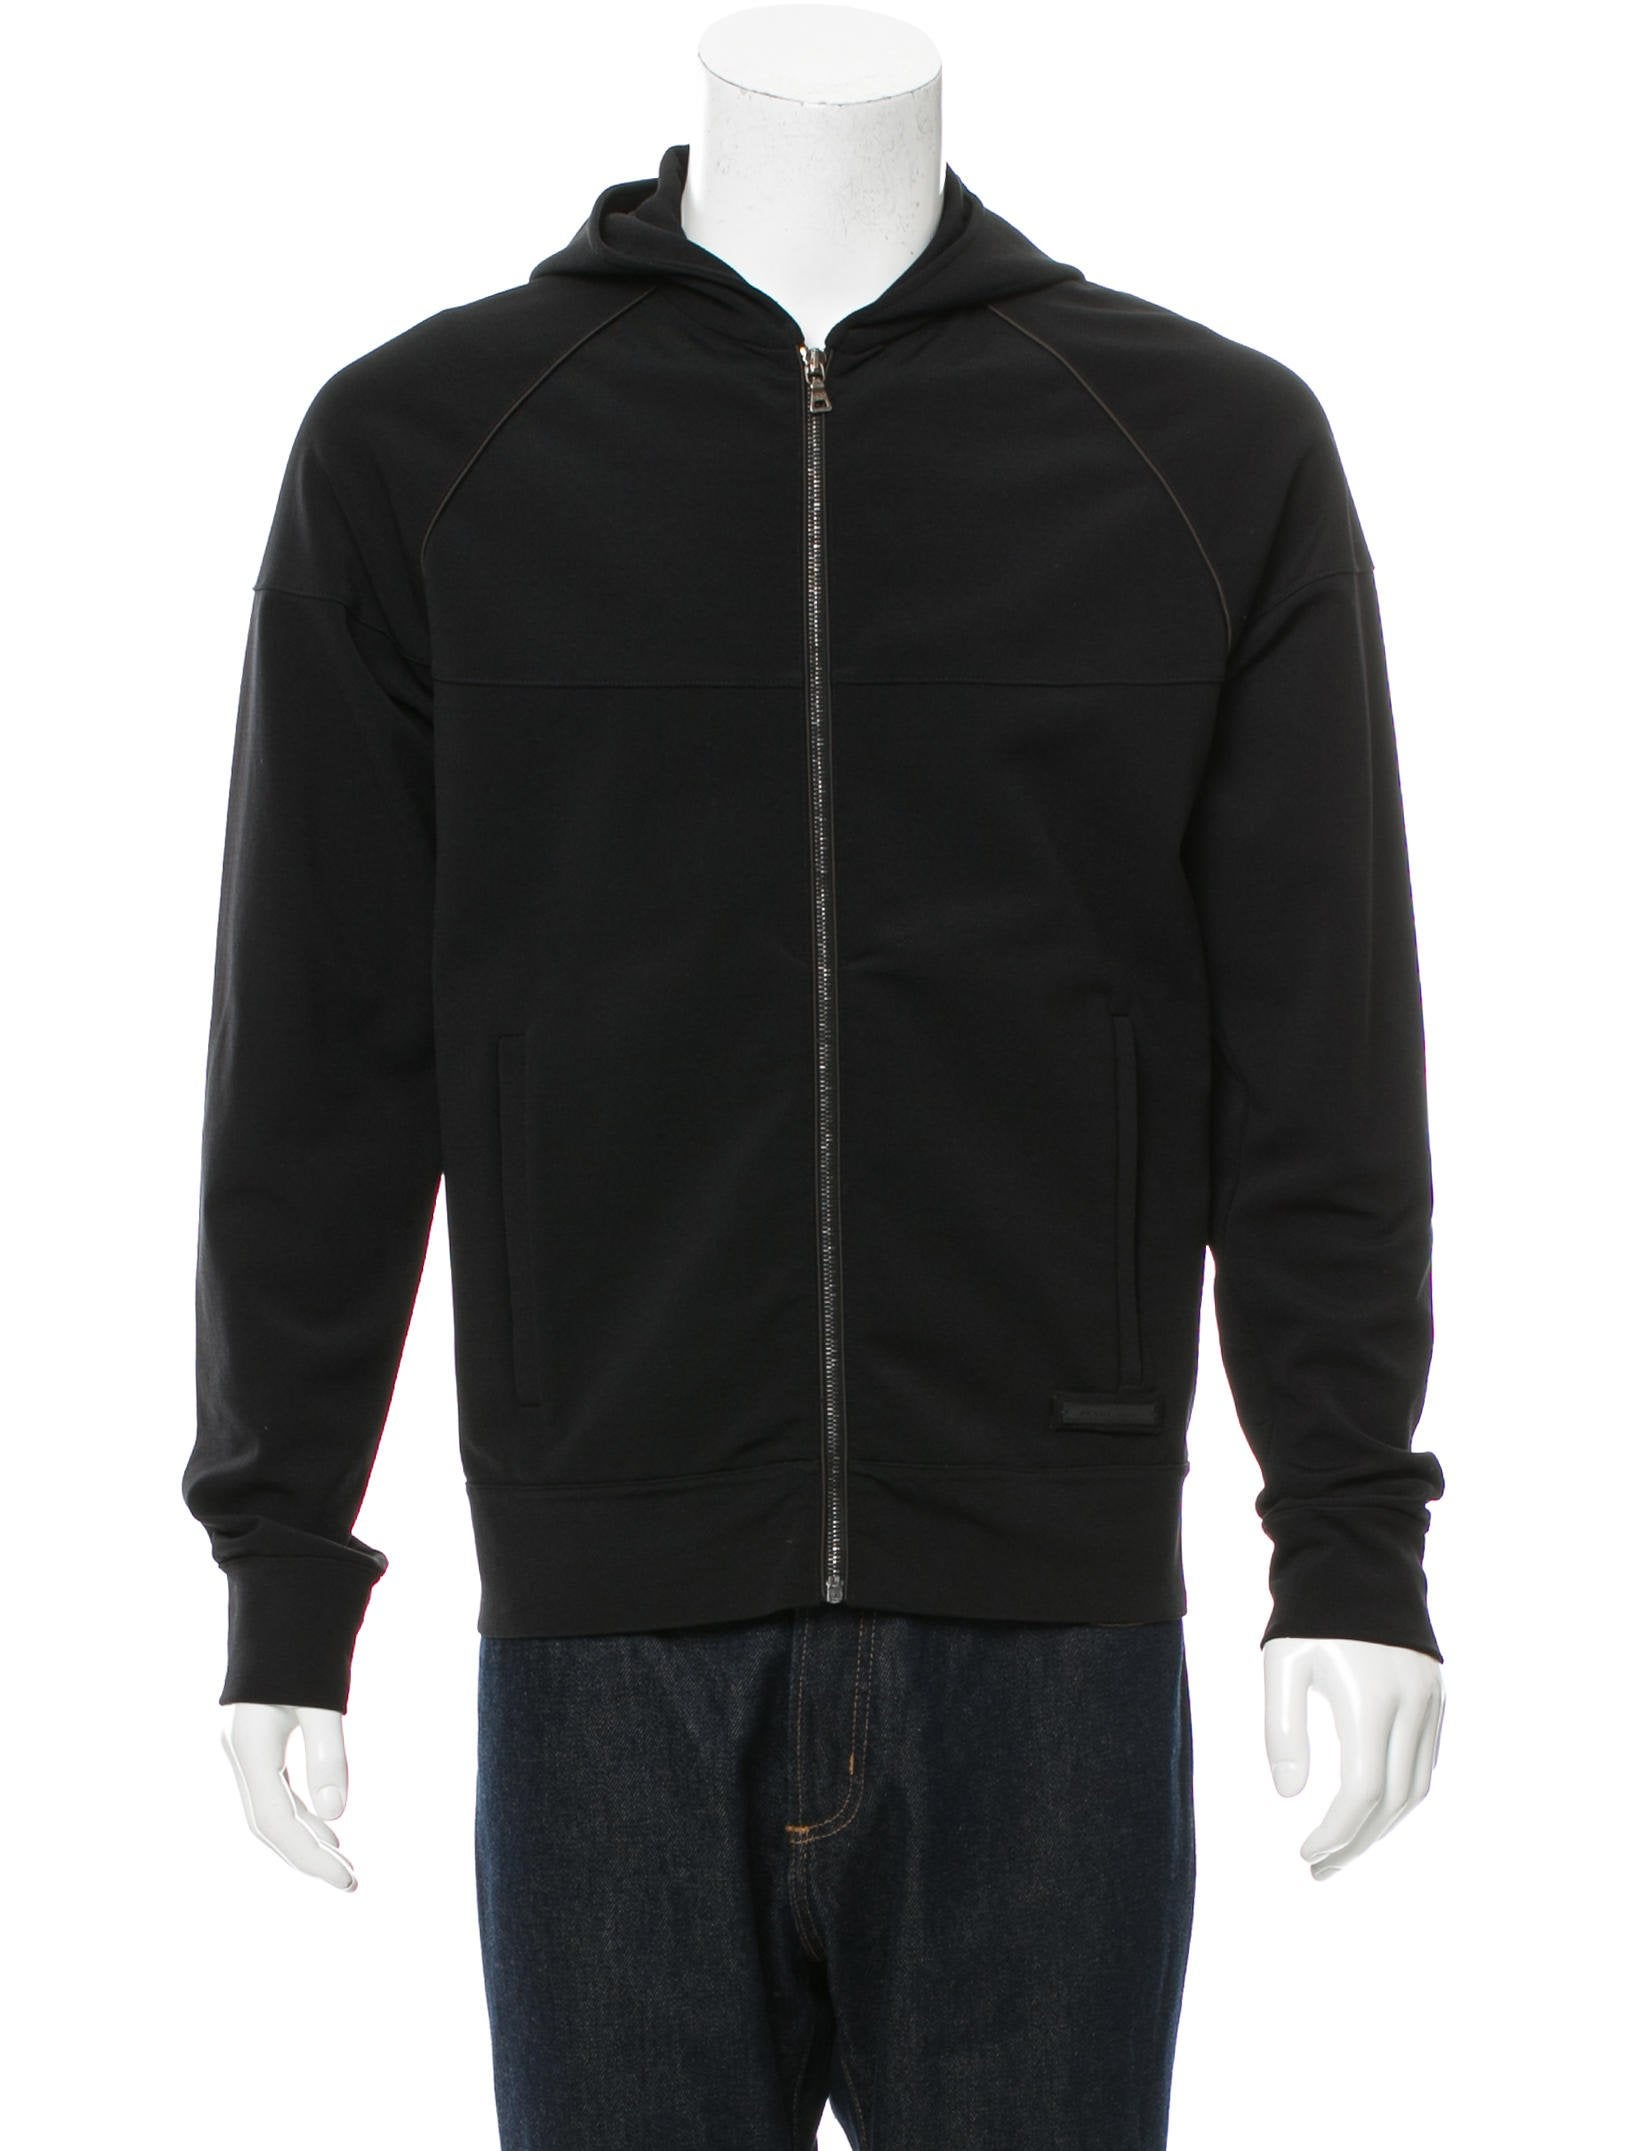 Prada Nylon Zip-Up Hoodie - Clothing - PRA147501 | The RealReal